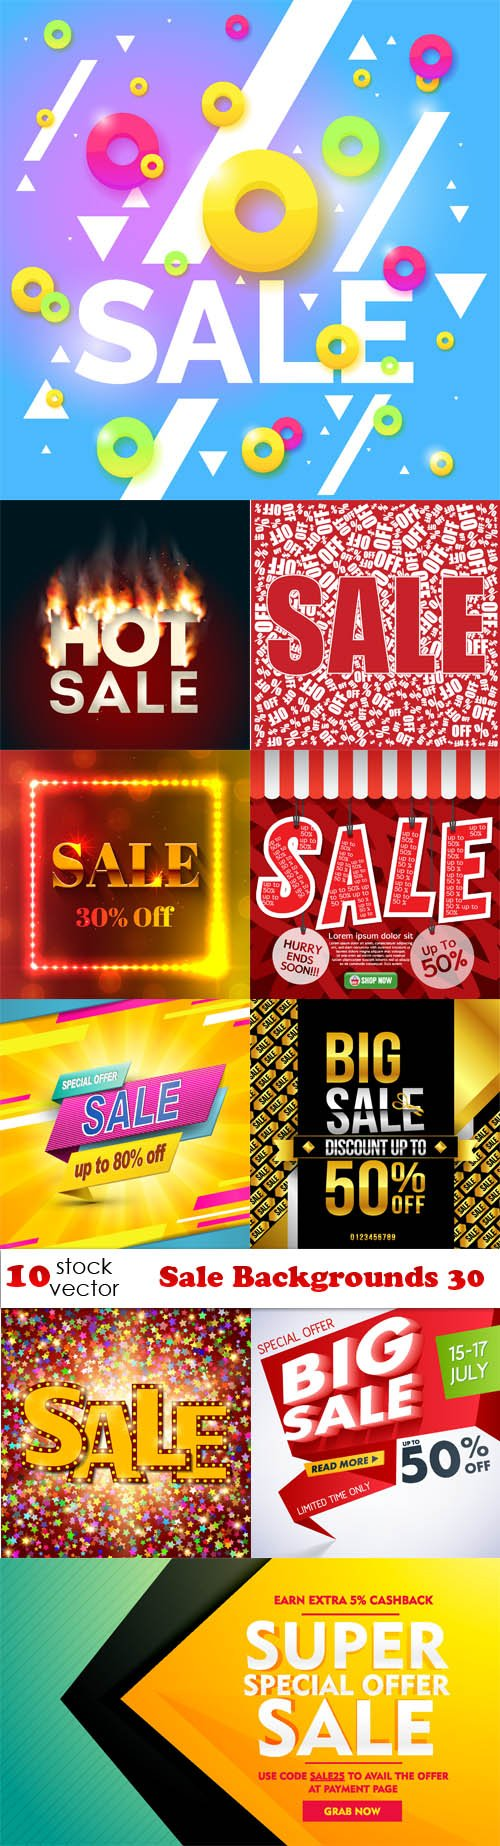 Vectors - Sale Backgrounds 30